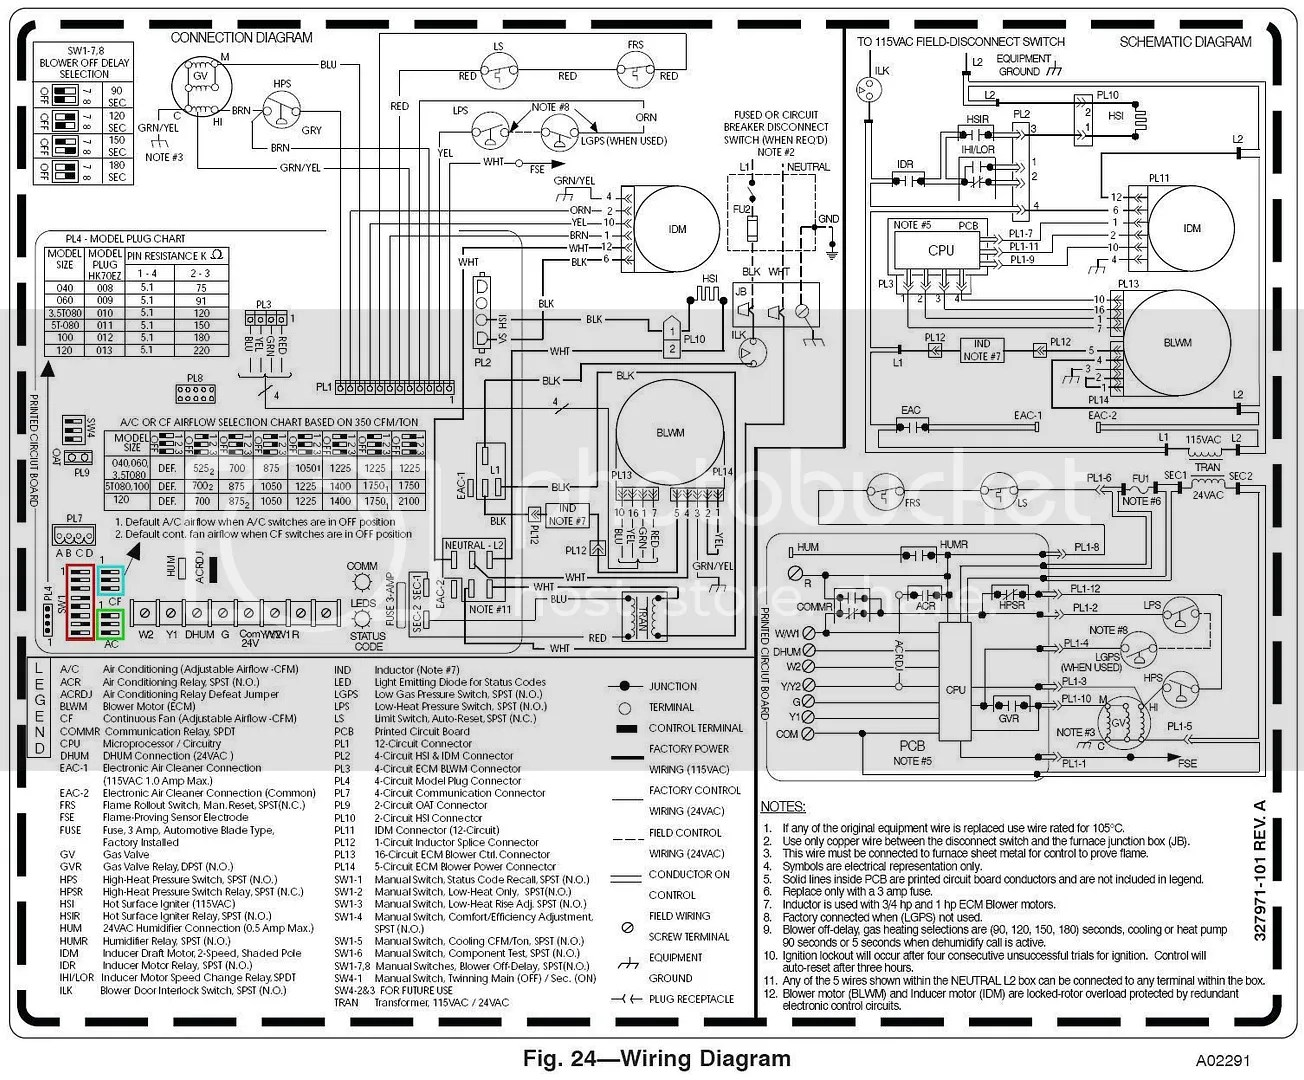 Ge Ecm Motor Wiring Diagram 27 Wiring Diagram Images